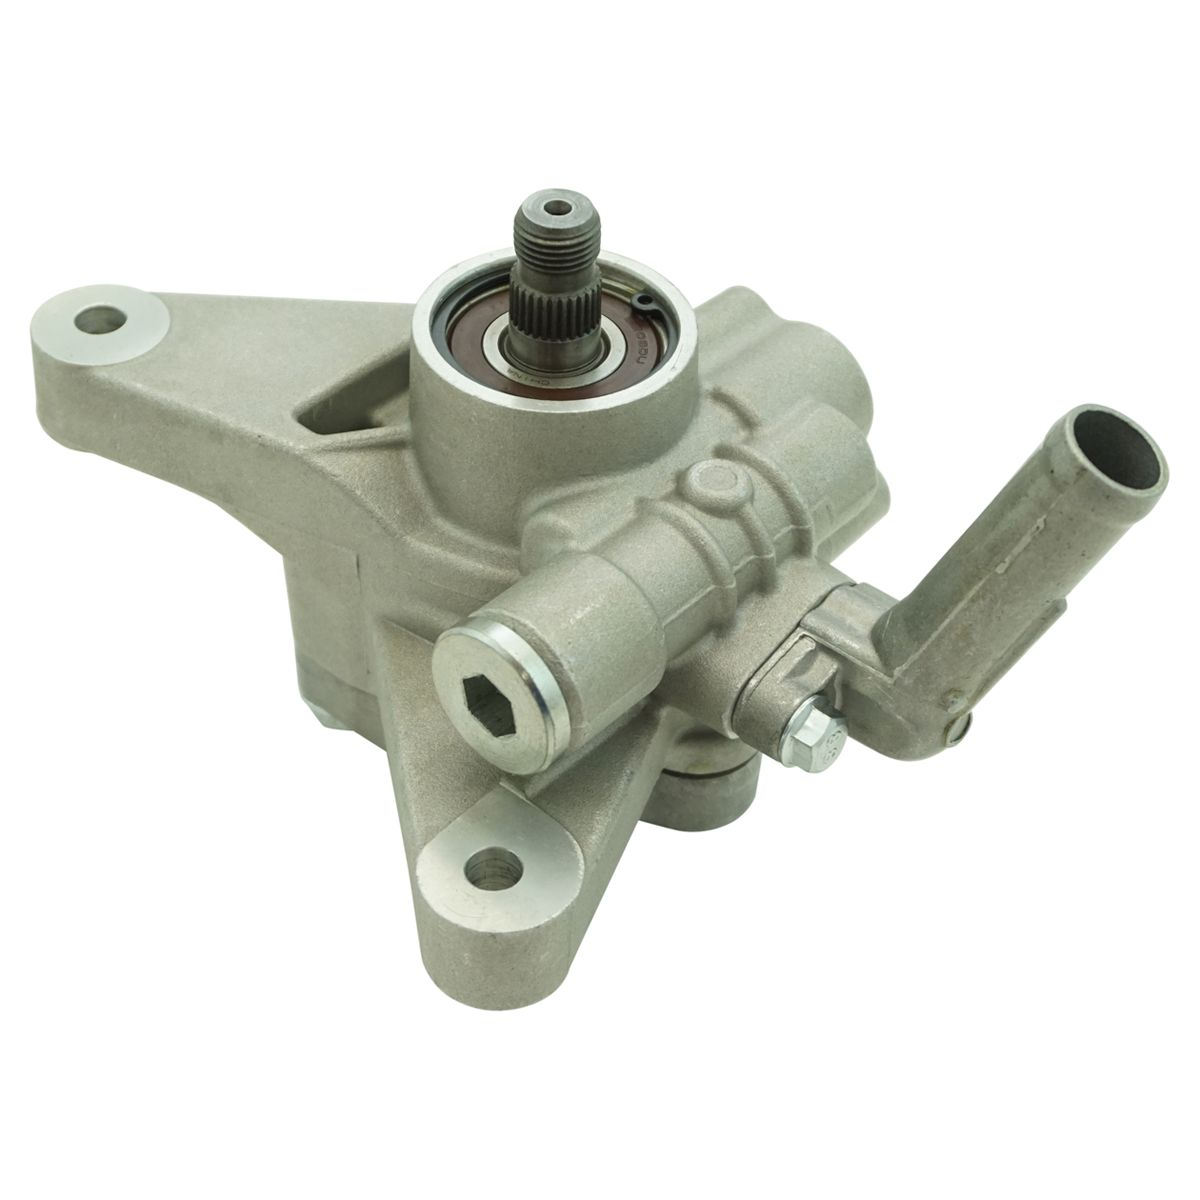 Brand New Power Steering Pump For Acura CL TL MDX Honda